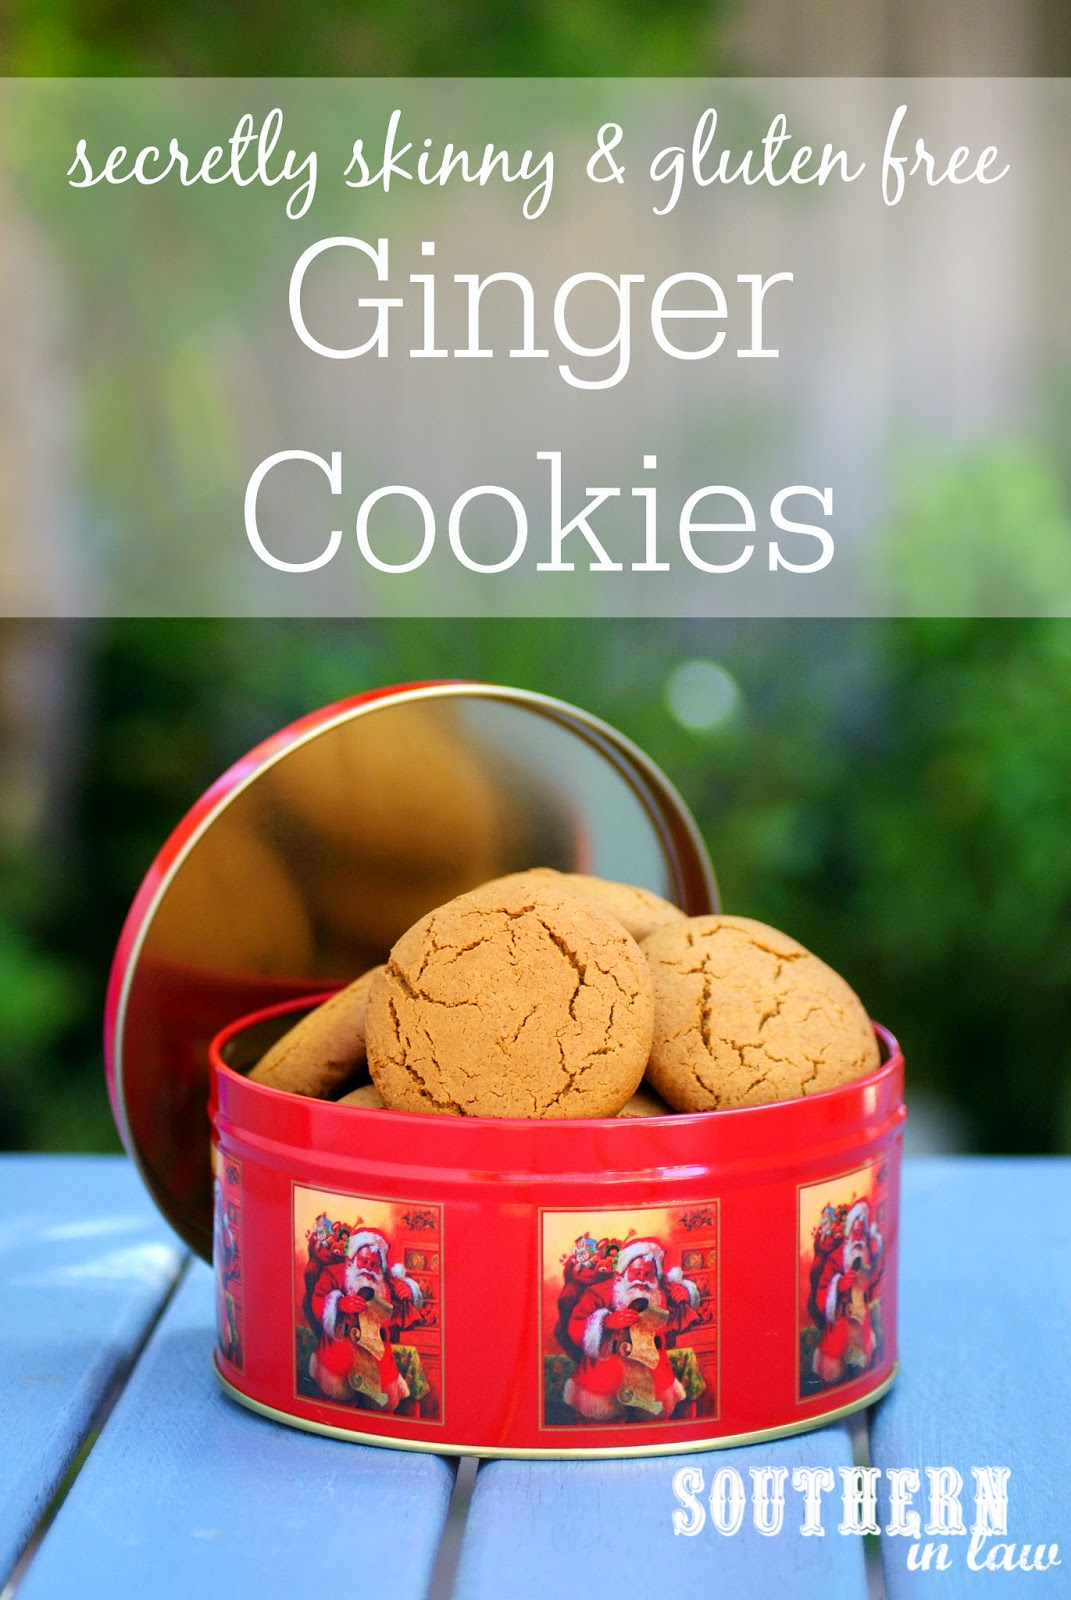 Low Fat Ginger Cookies Recipe - Healthy Christmas Cookie Recipes, Healthy, Low Fat, Gluten Free, Low Sugar, Skinny Recipes, Gingernut Biscuits, Ginger Biscuits, Home made